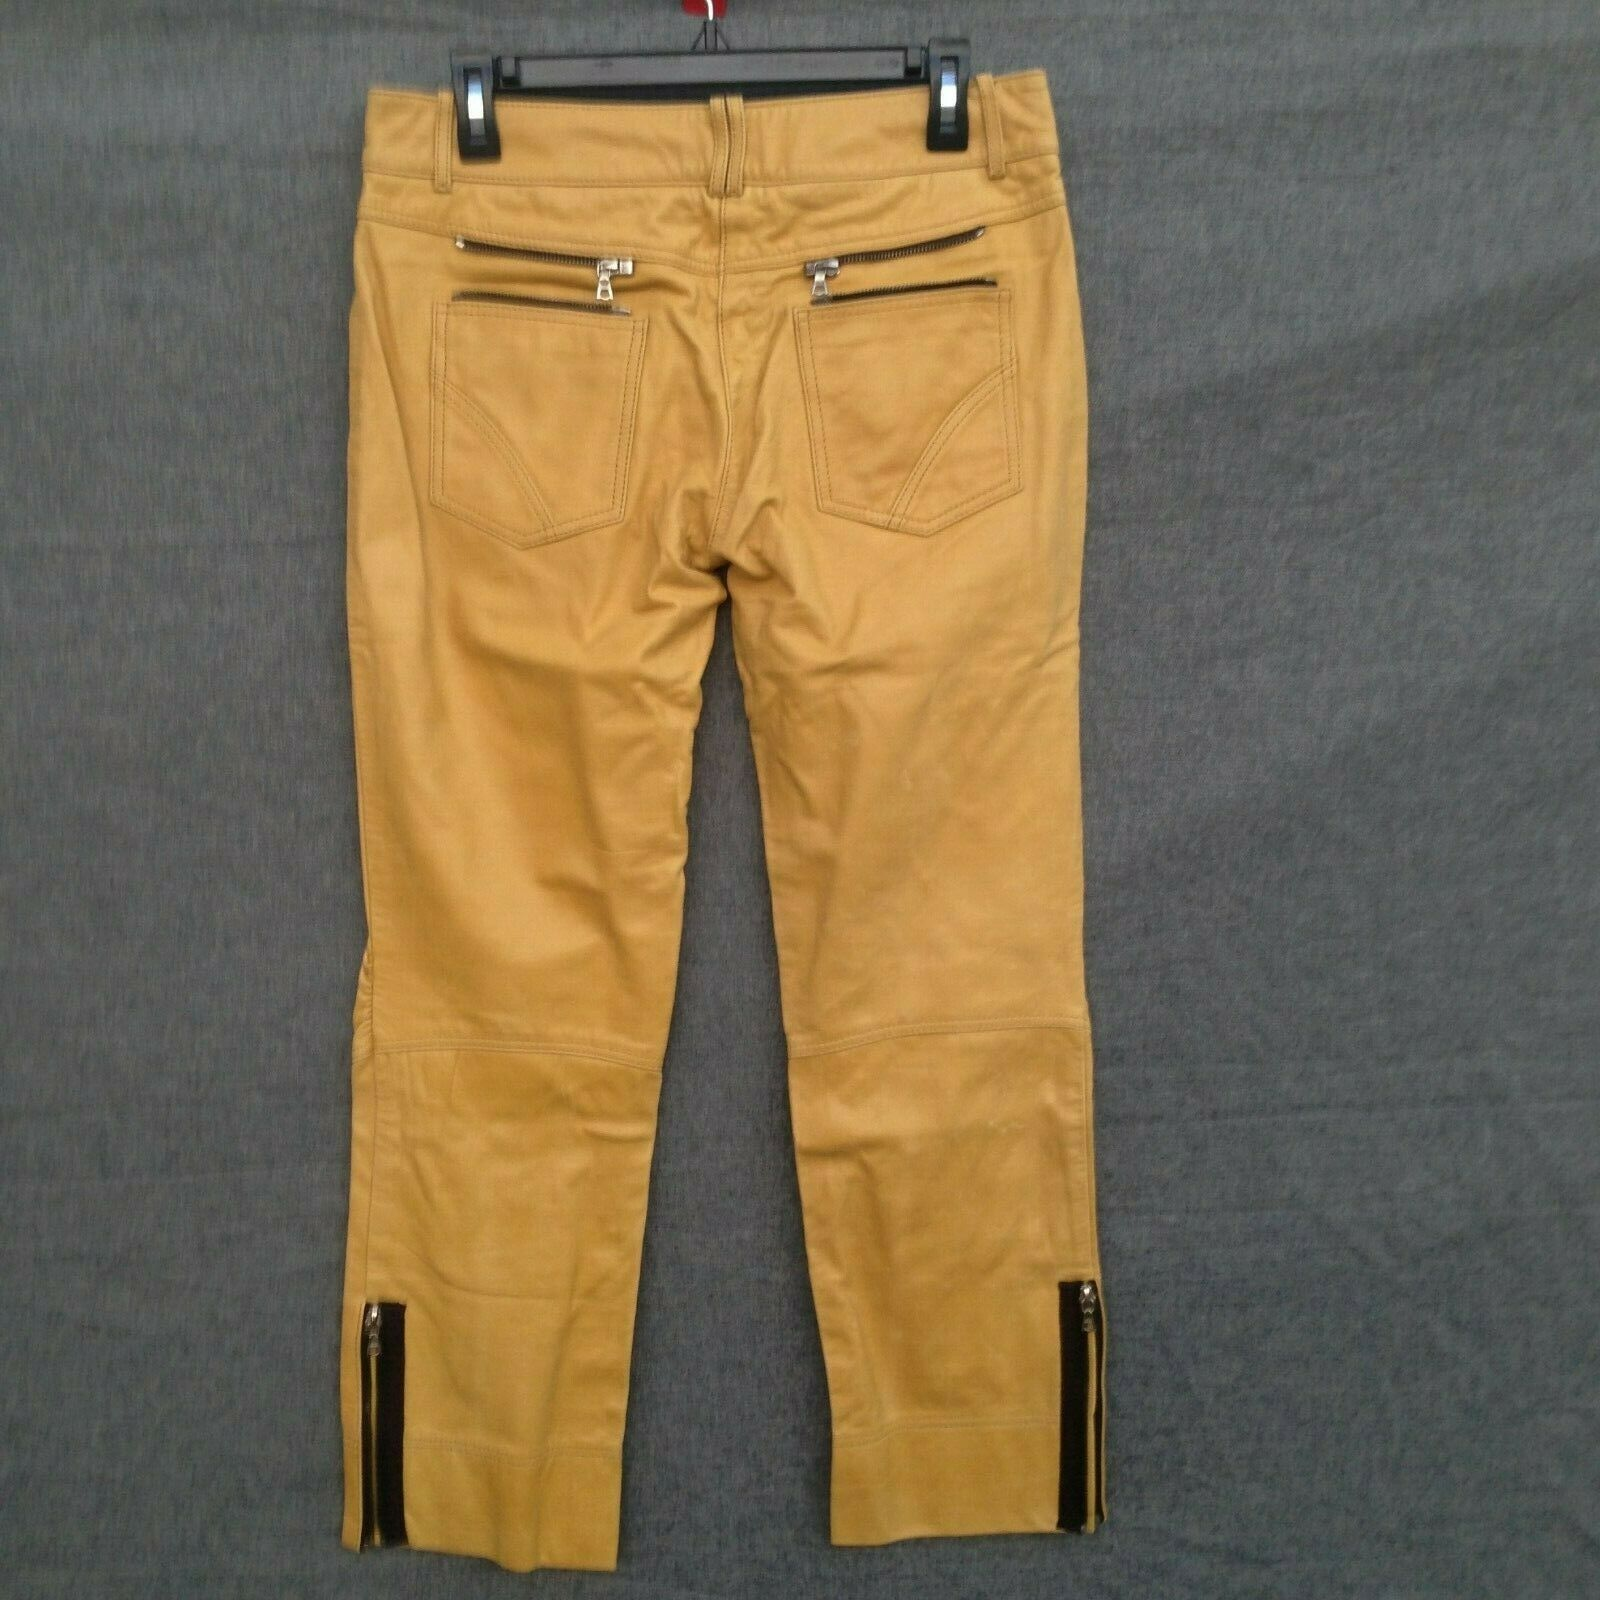 MaxAzria Leather Collection Biker pants -AMBER- Size 8 S